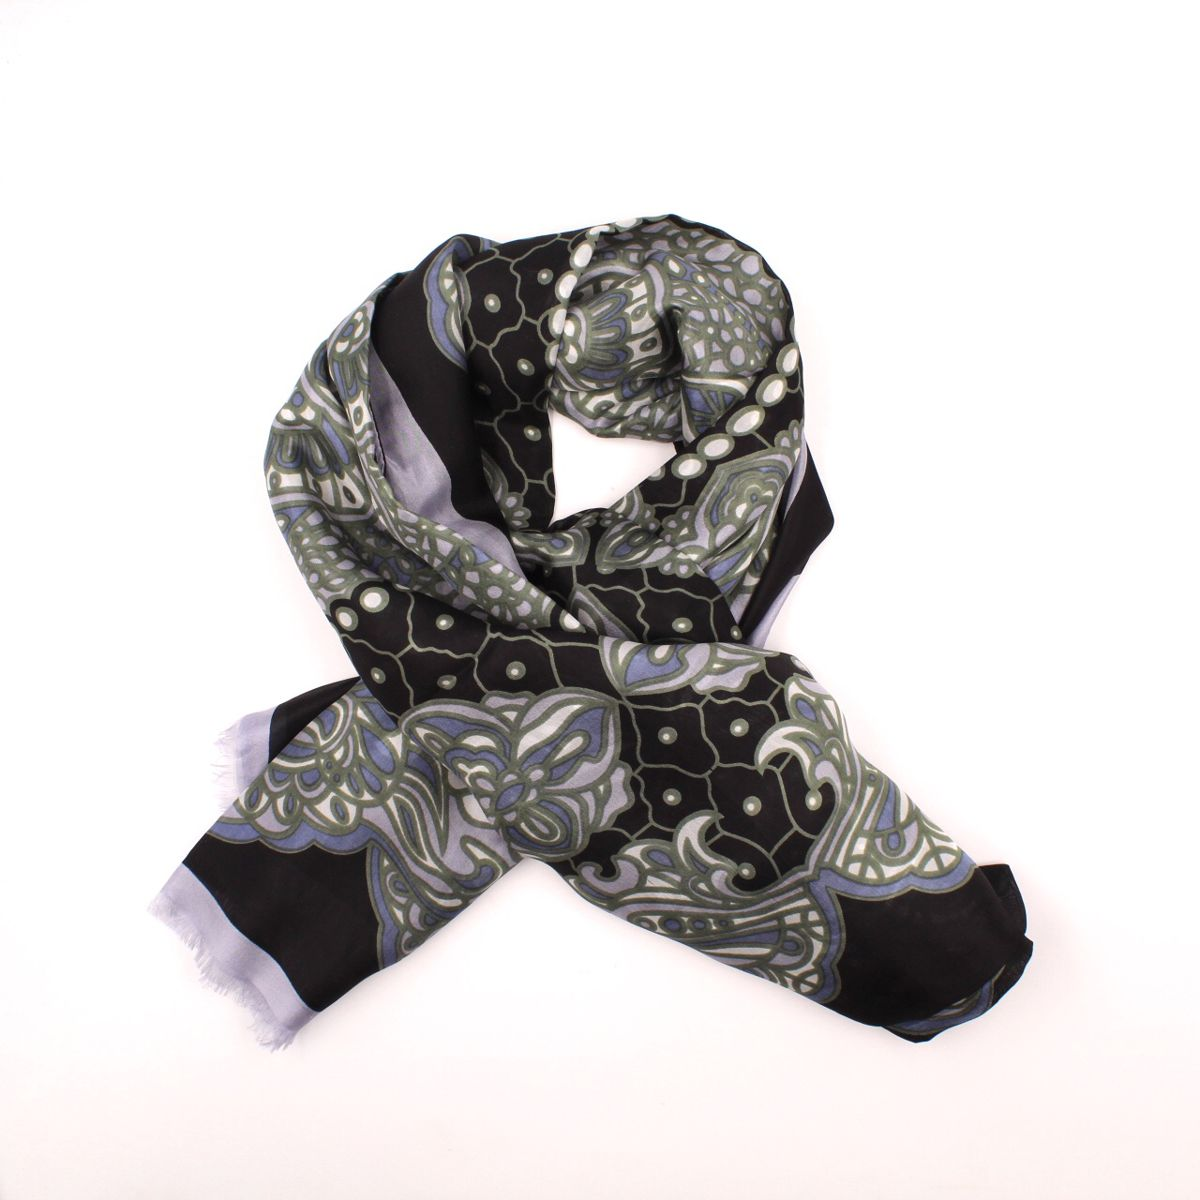 1. Millefeuille Scarf Black Ordi.to